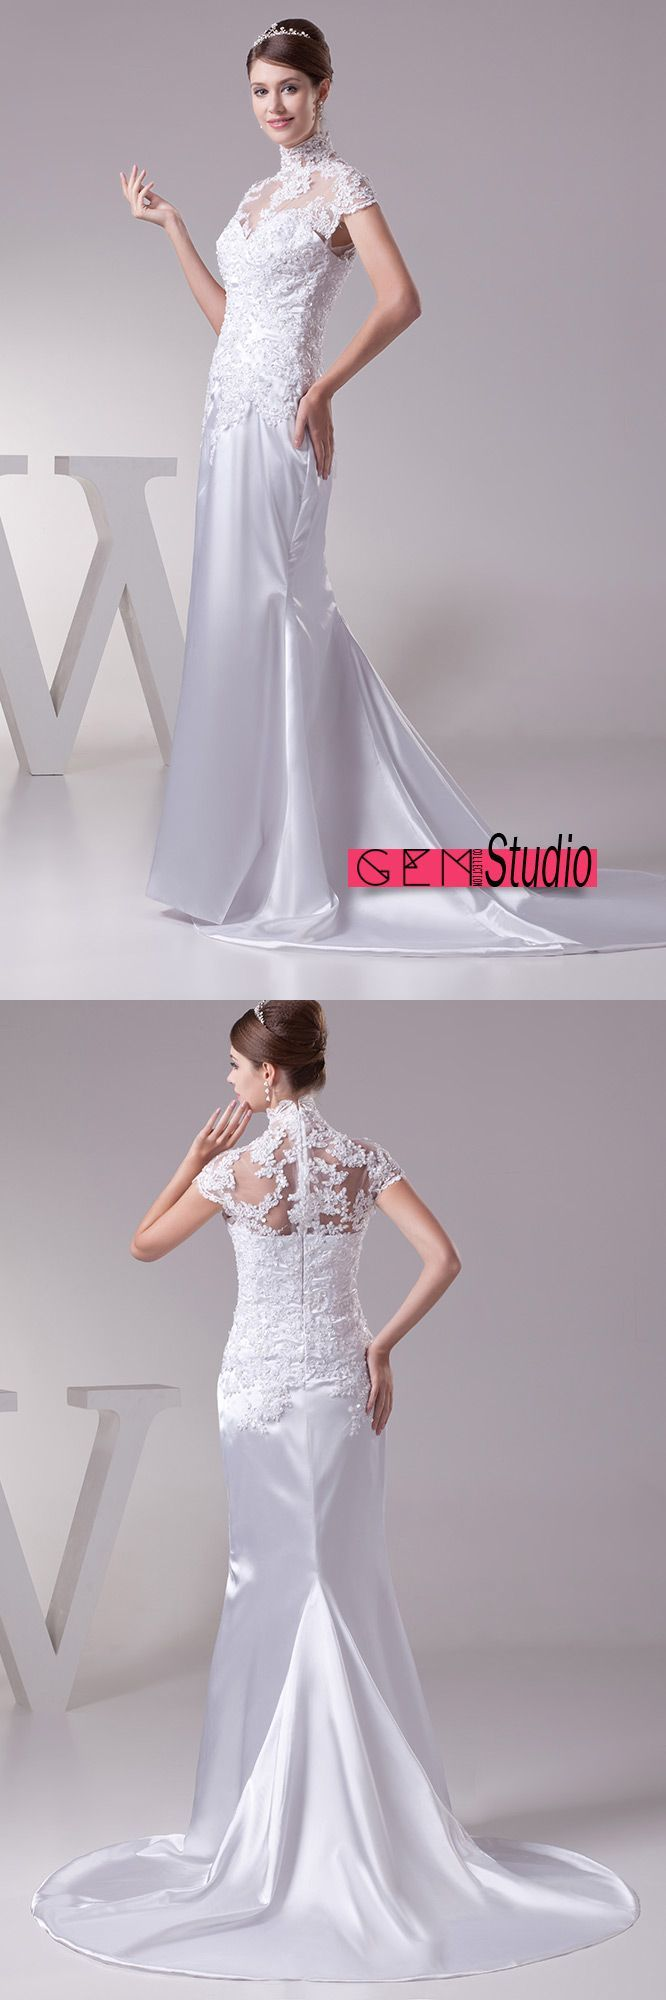 Long halter lace cap sleeves sleek satin mermaid wedding dress